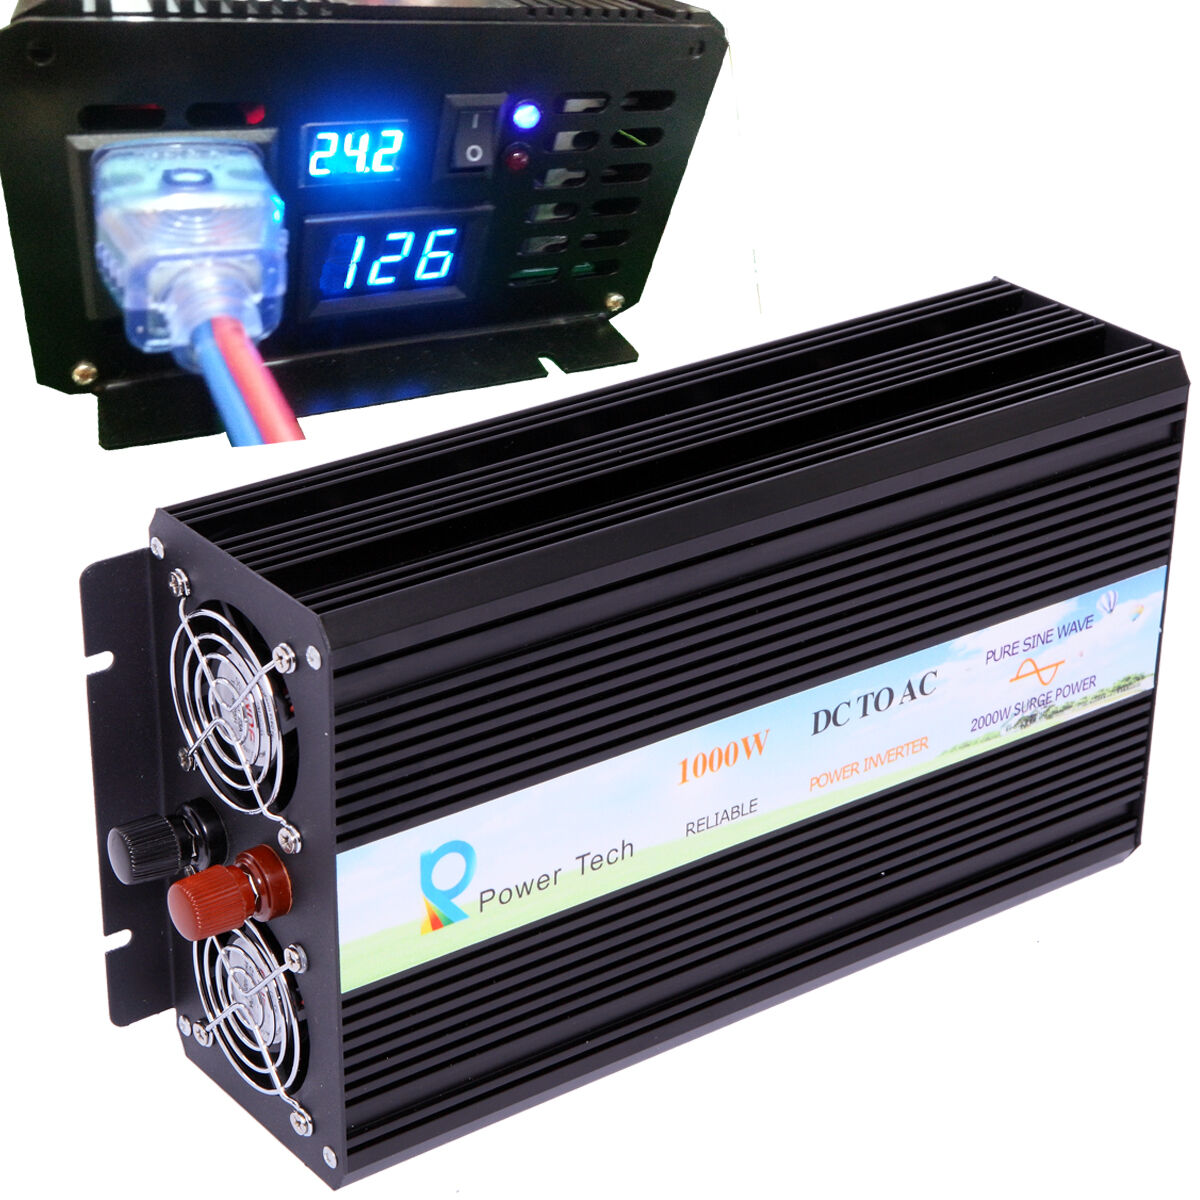 Reliable Off Grid 3500w Pure Sine Wave Inverter 12vdc To 120vac Wavedc Sign Wavesine Diagrampwm Inverterpure Norton Secured Powered By Verisign